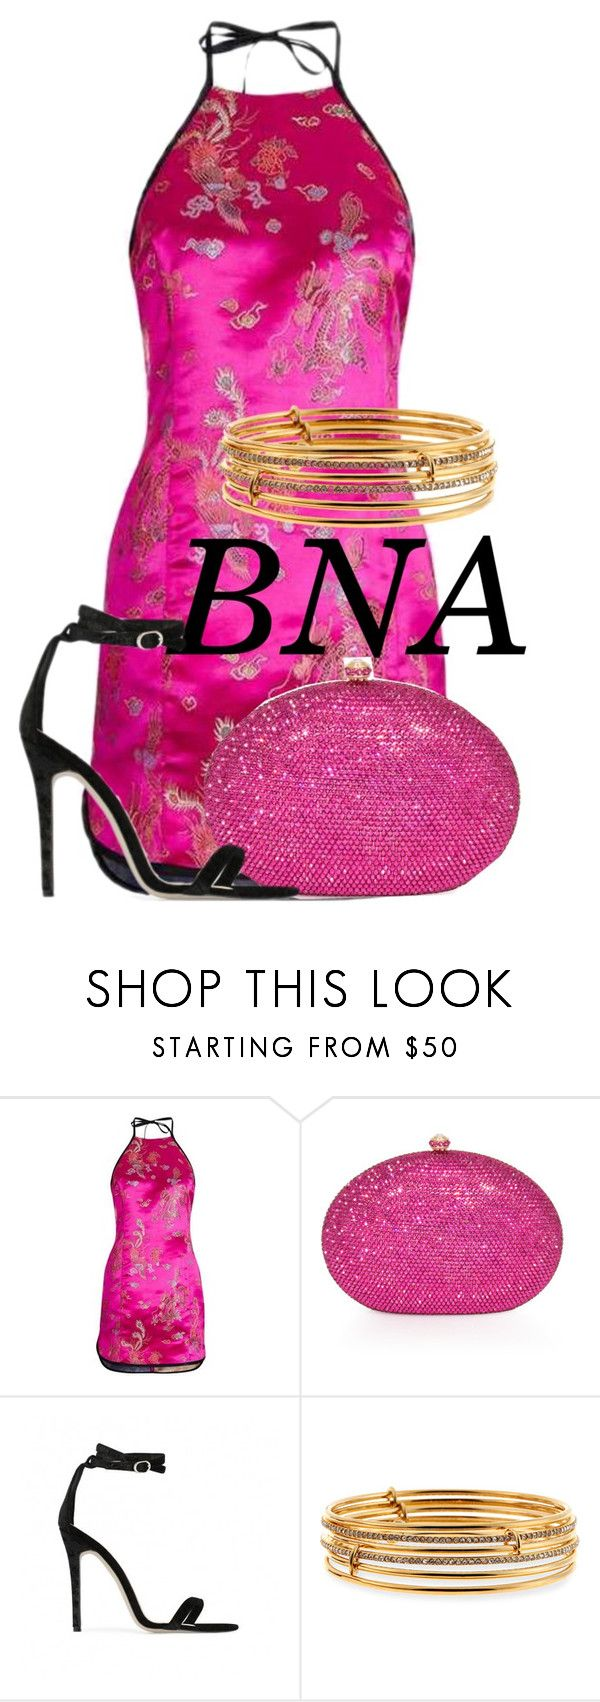 """BNA"" by deborahsauveur ❤ liked on Polyvore featuring Topshop, Dolli, Baldwin and Kate Spade"